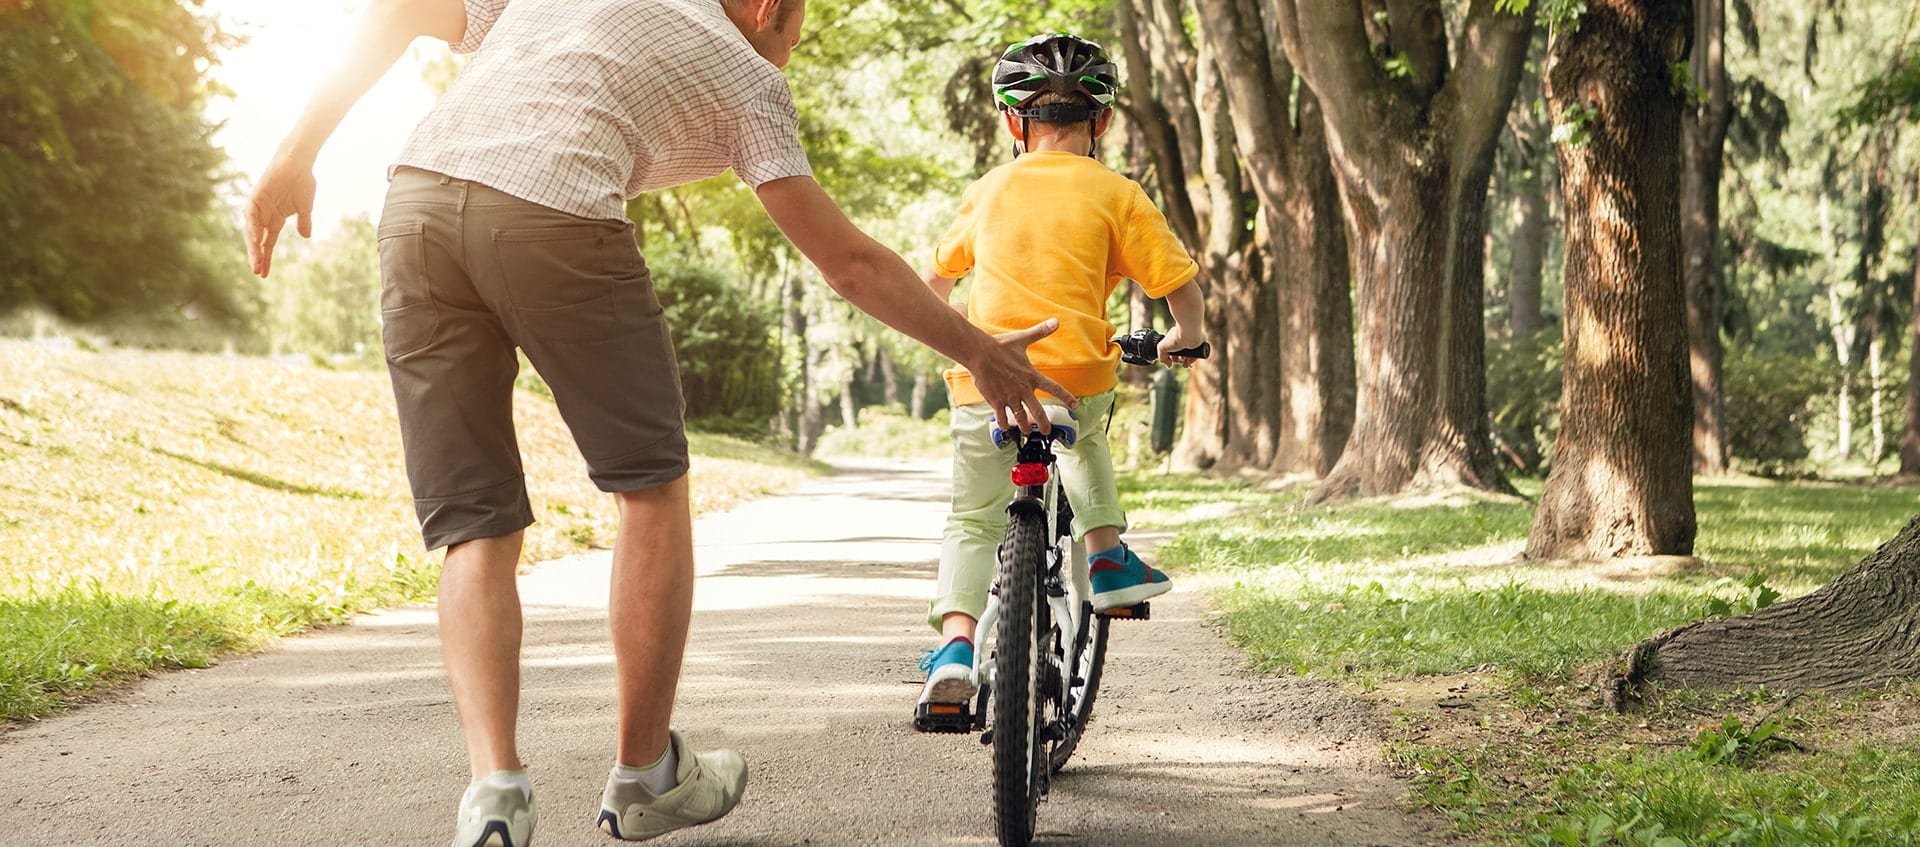 Father on tree-lined sidewalk teaching child to ride a bike